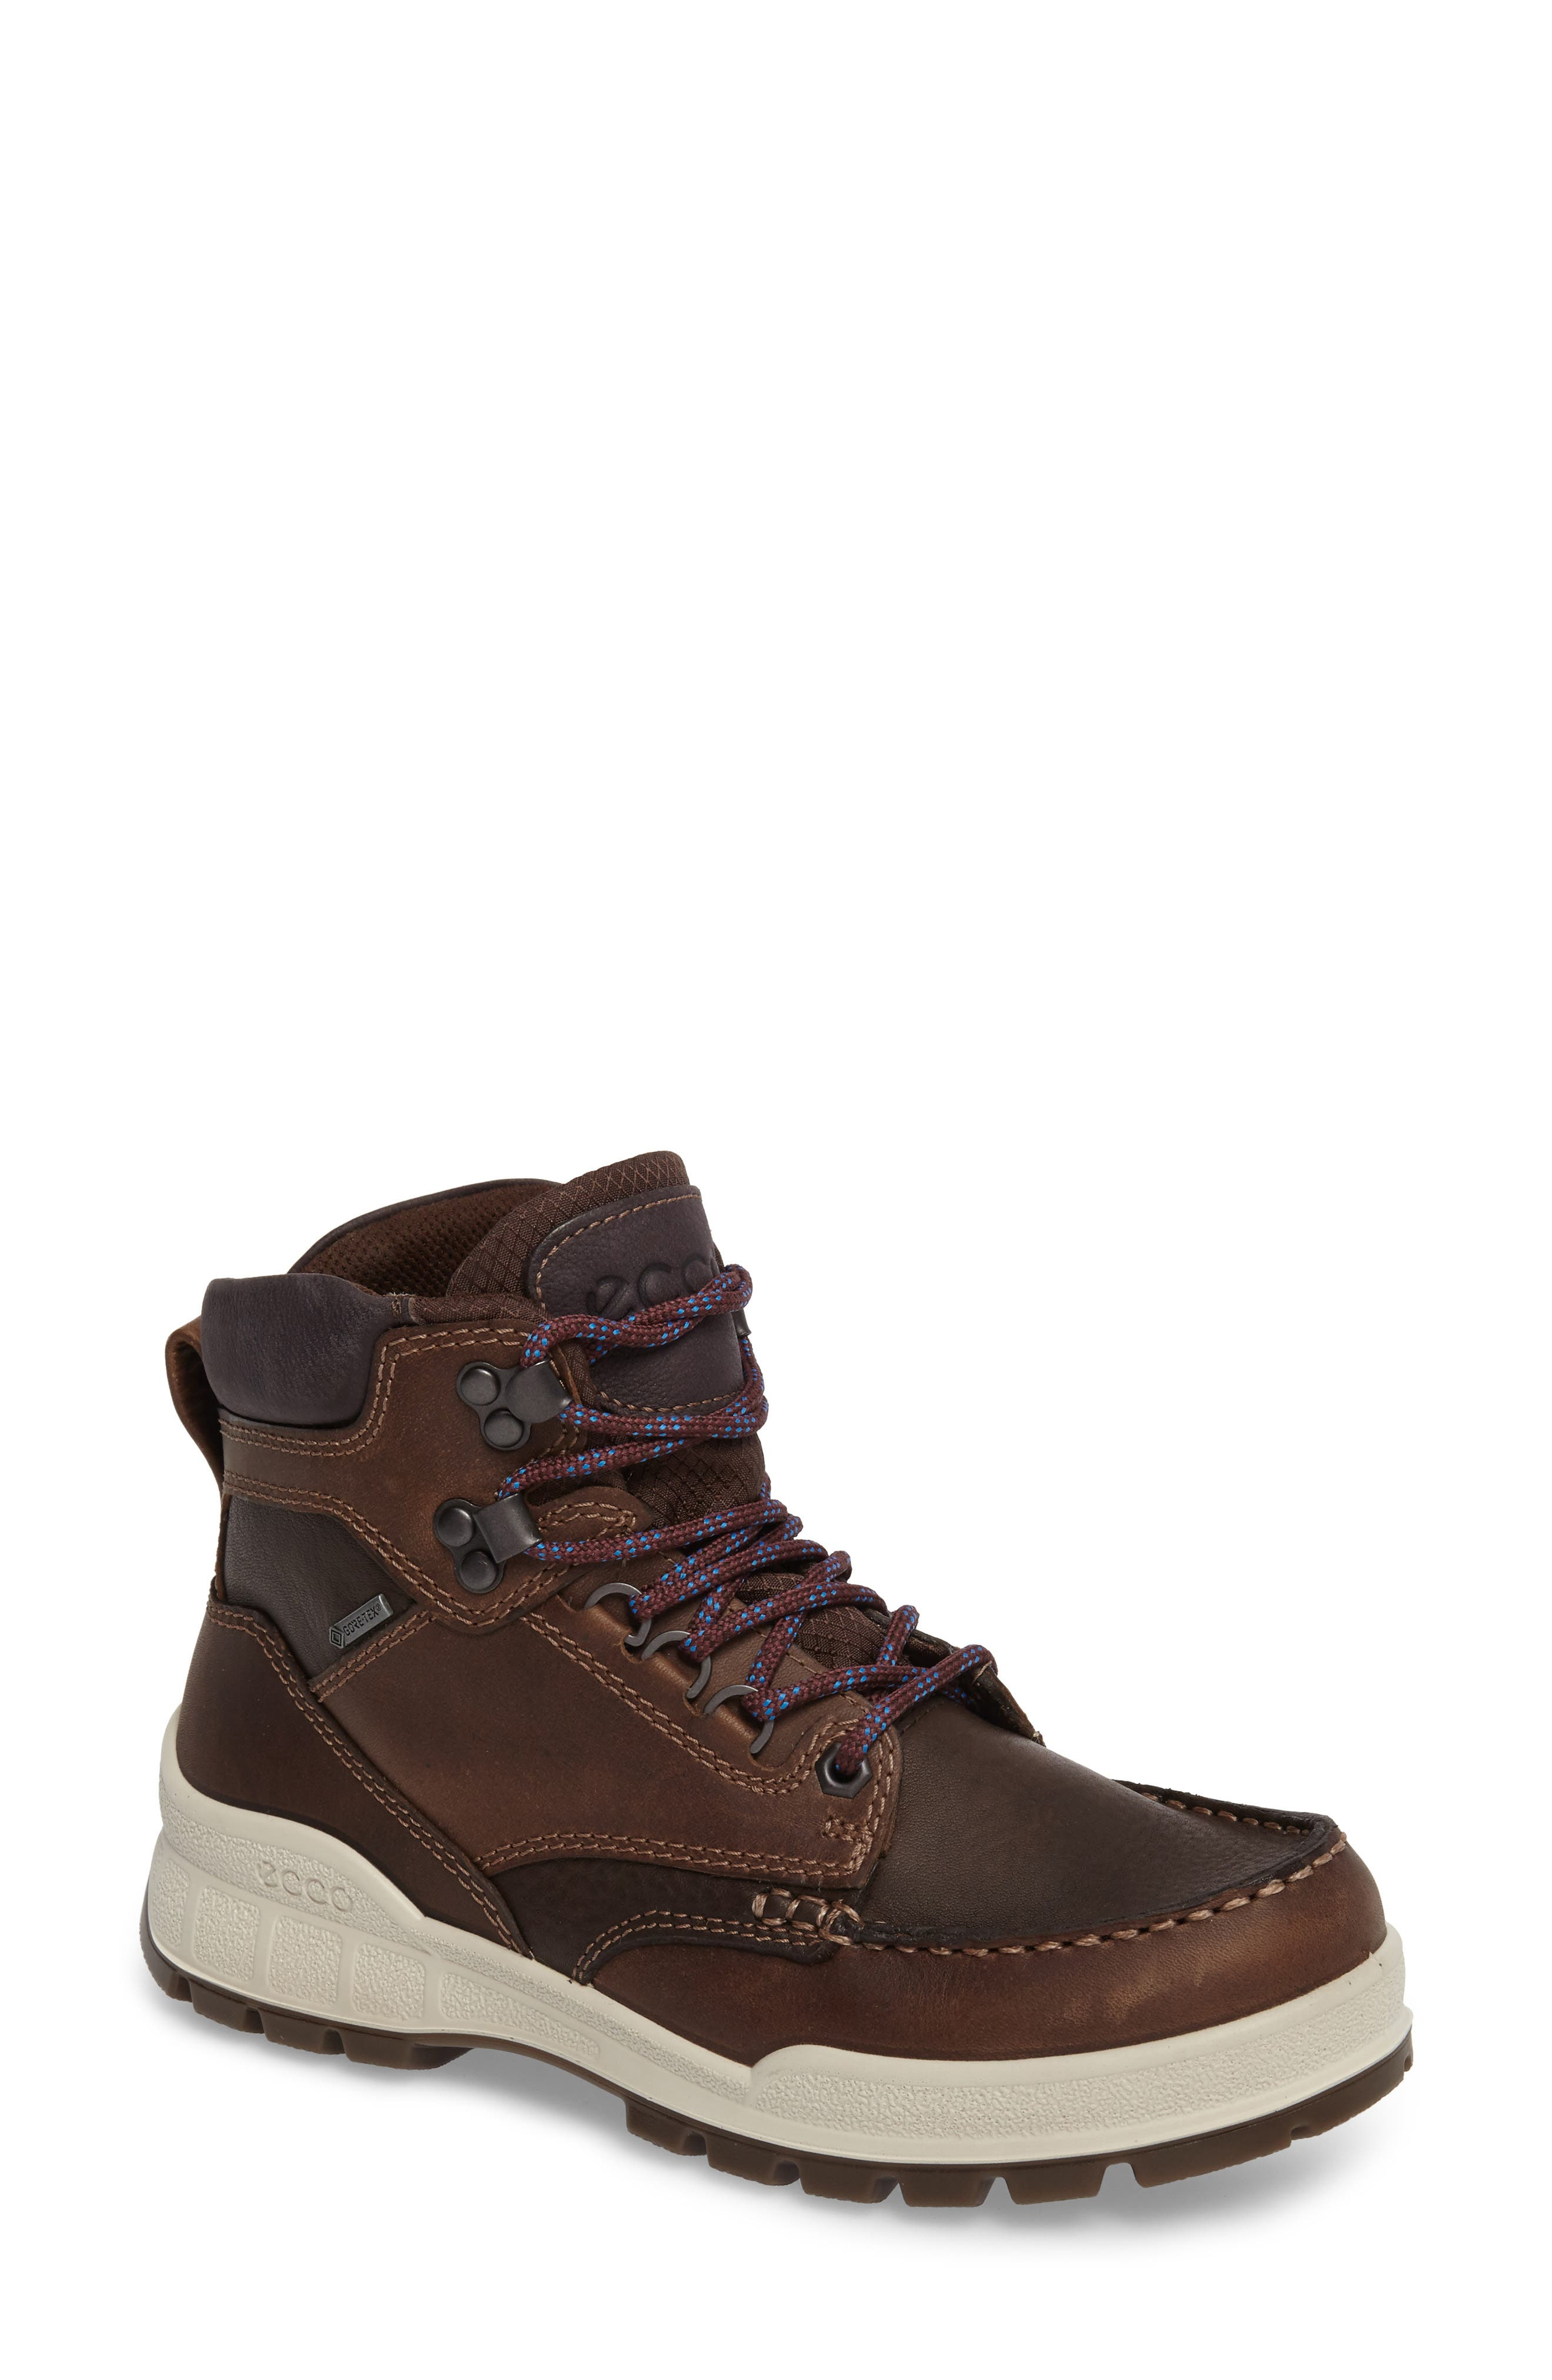 Track 25 Gore-Tex<sup>®</sup> Waterproof Hiking Boot,                             Main thumbnail 1, color,                             Cocoa Brown Leather